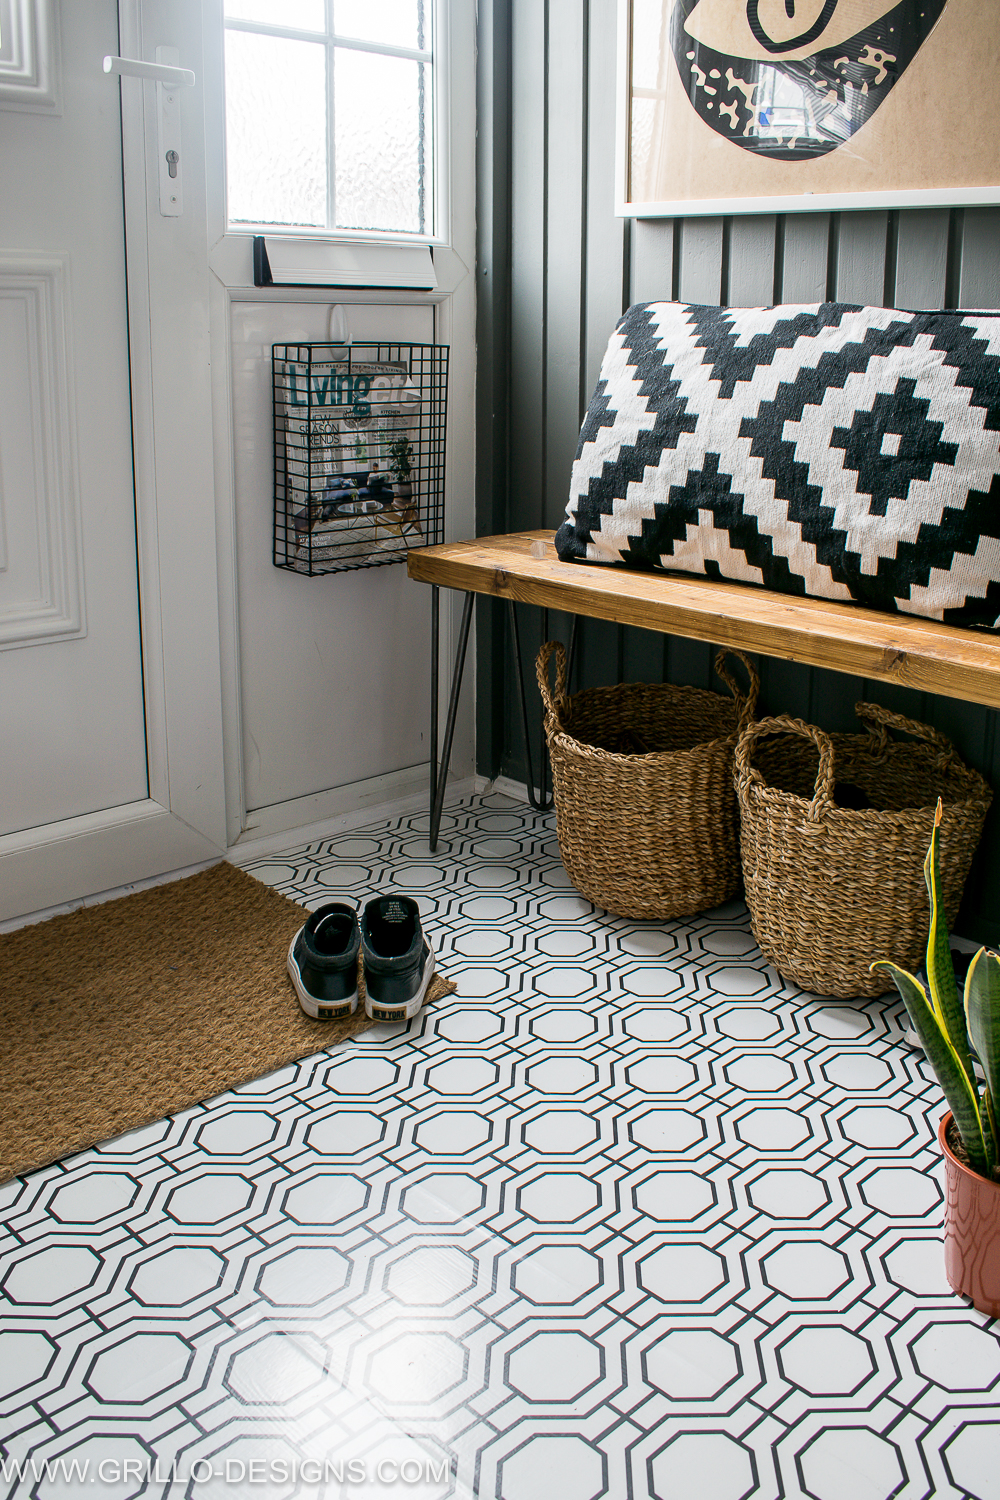 How to wallpaper your floor by Grillo Designs, featured on Funky Junk Interiors